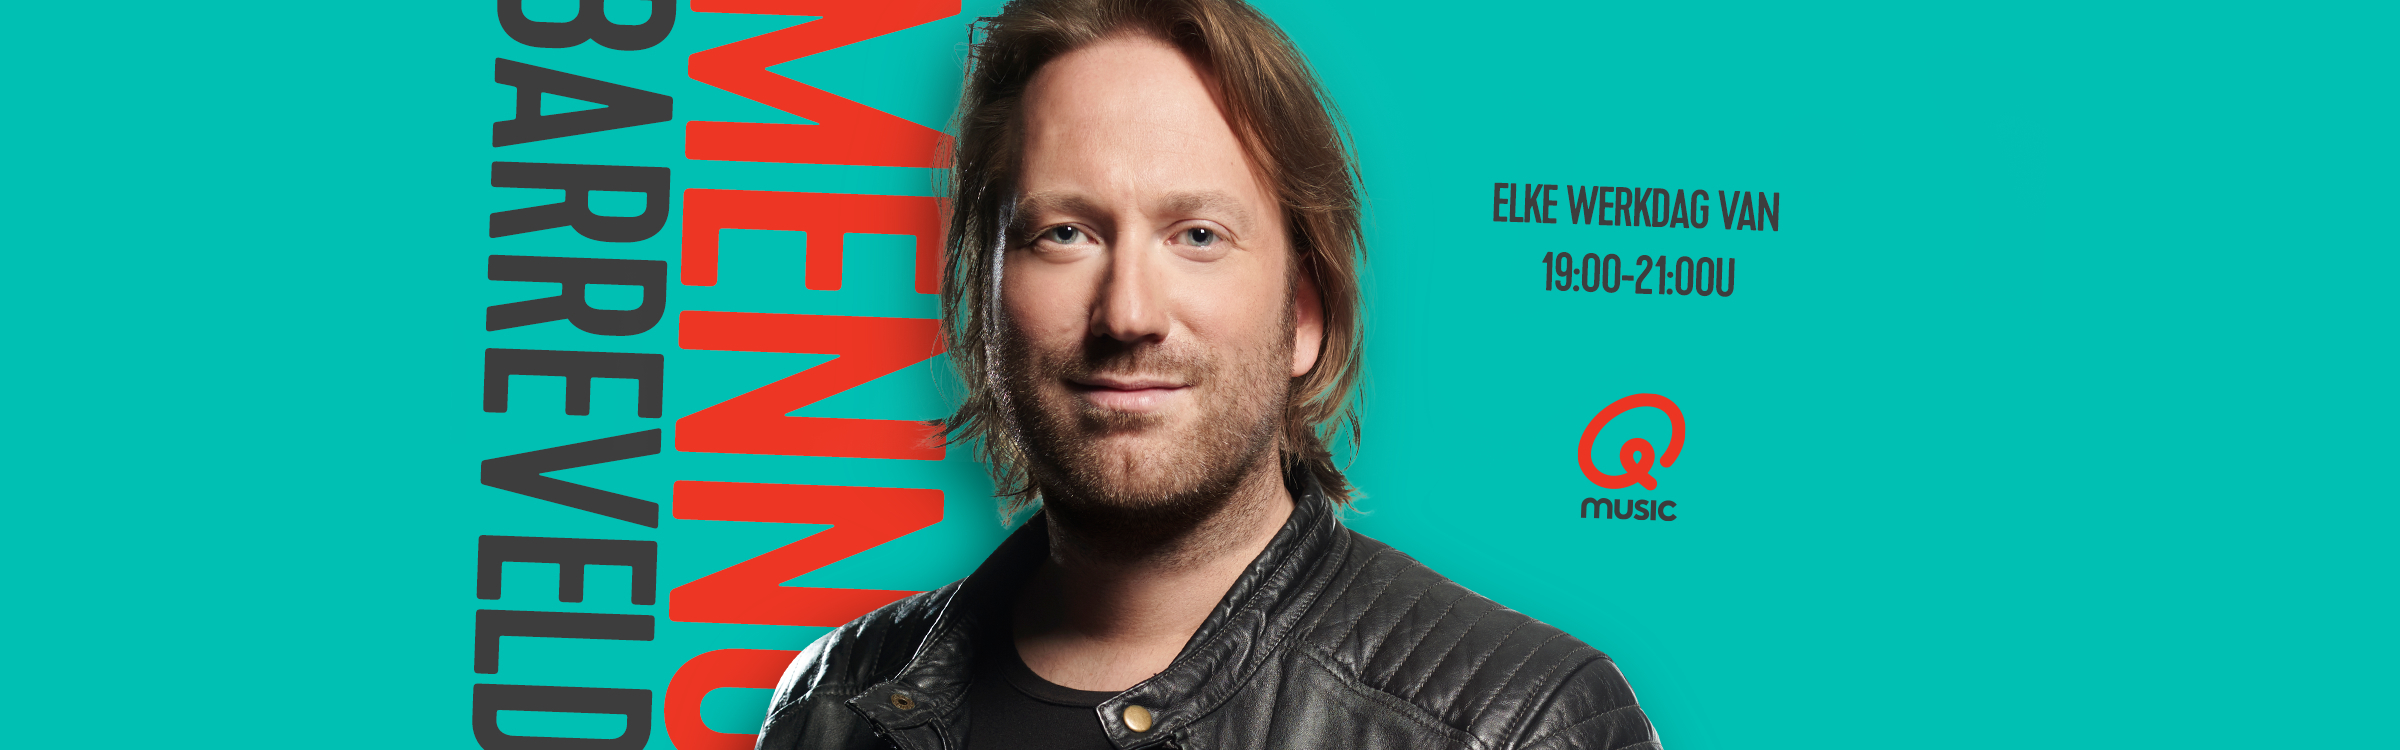 Qmusic actionheader menno  1